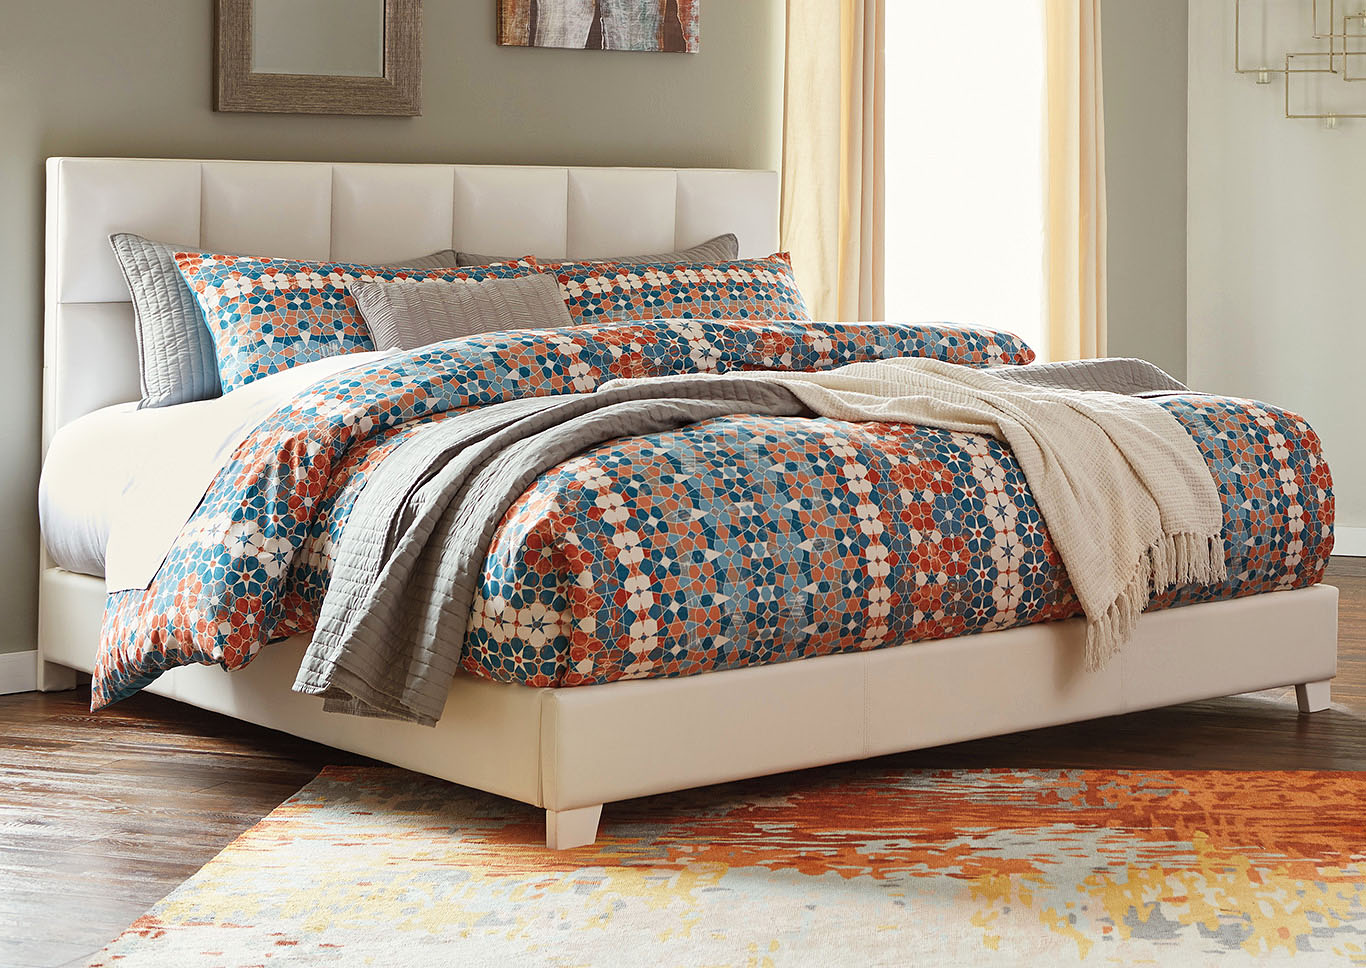 Contemporary Upholstered Beds Multi King Upholstered Bed,ABF Signature Design by Ashley